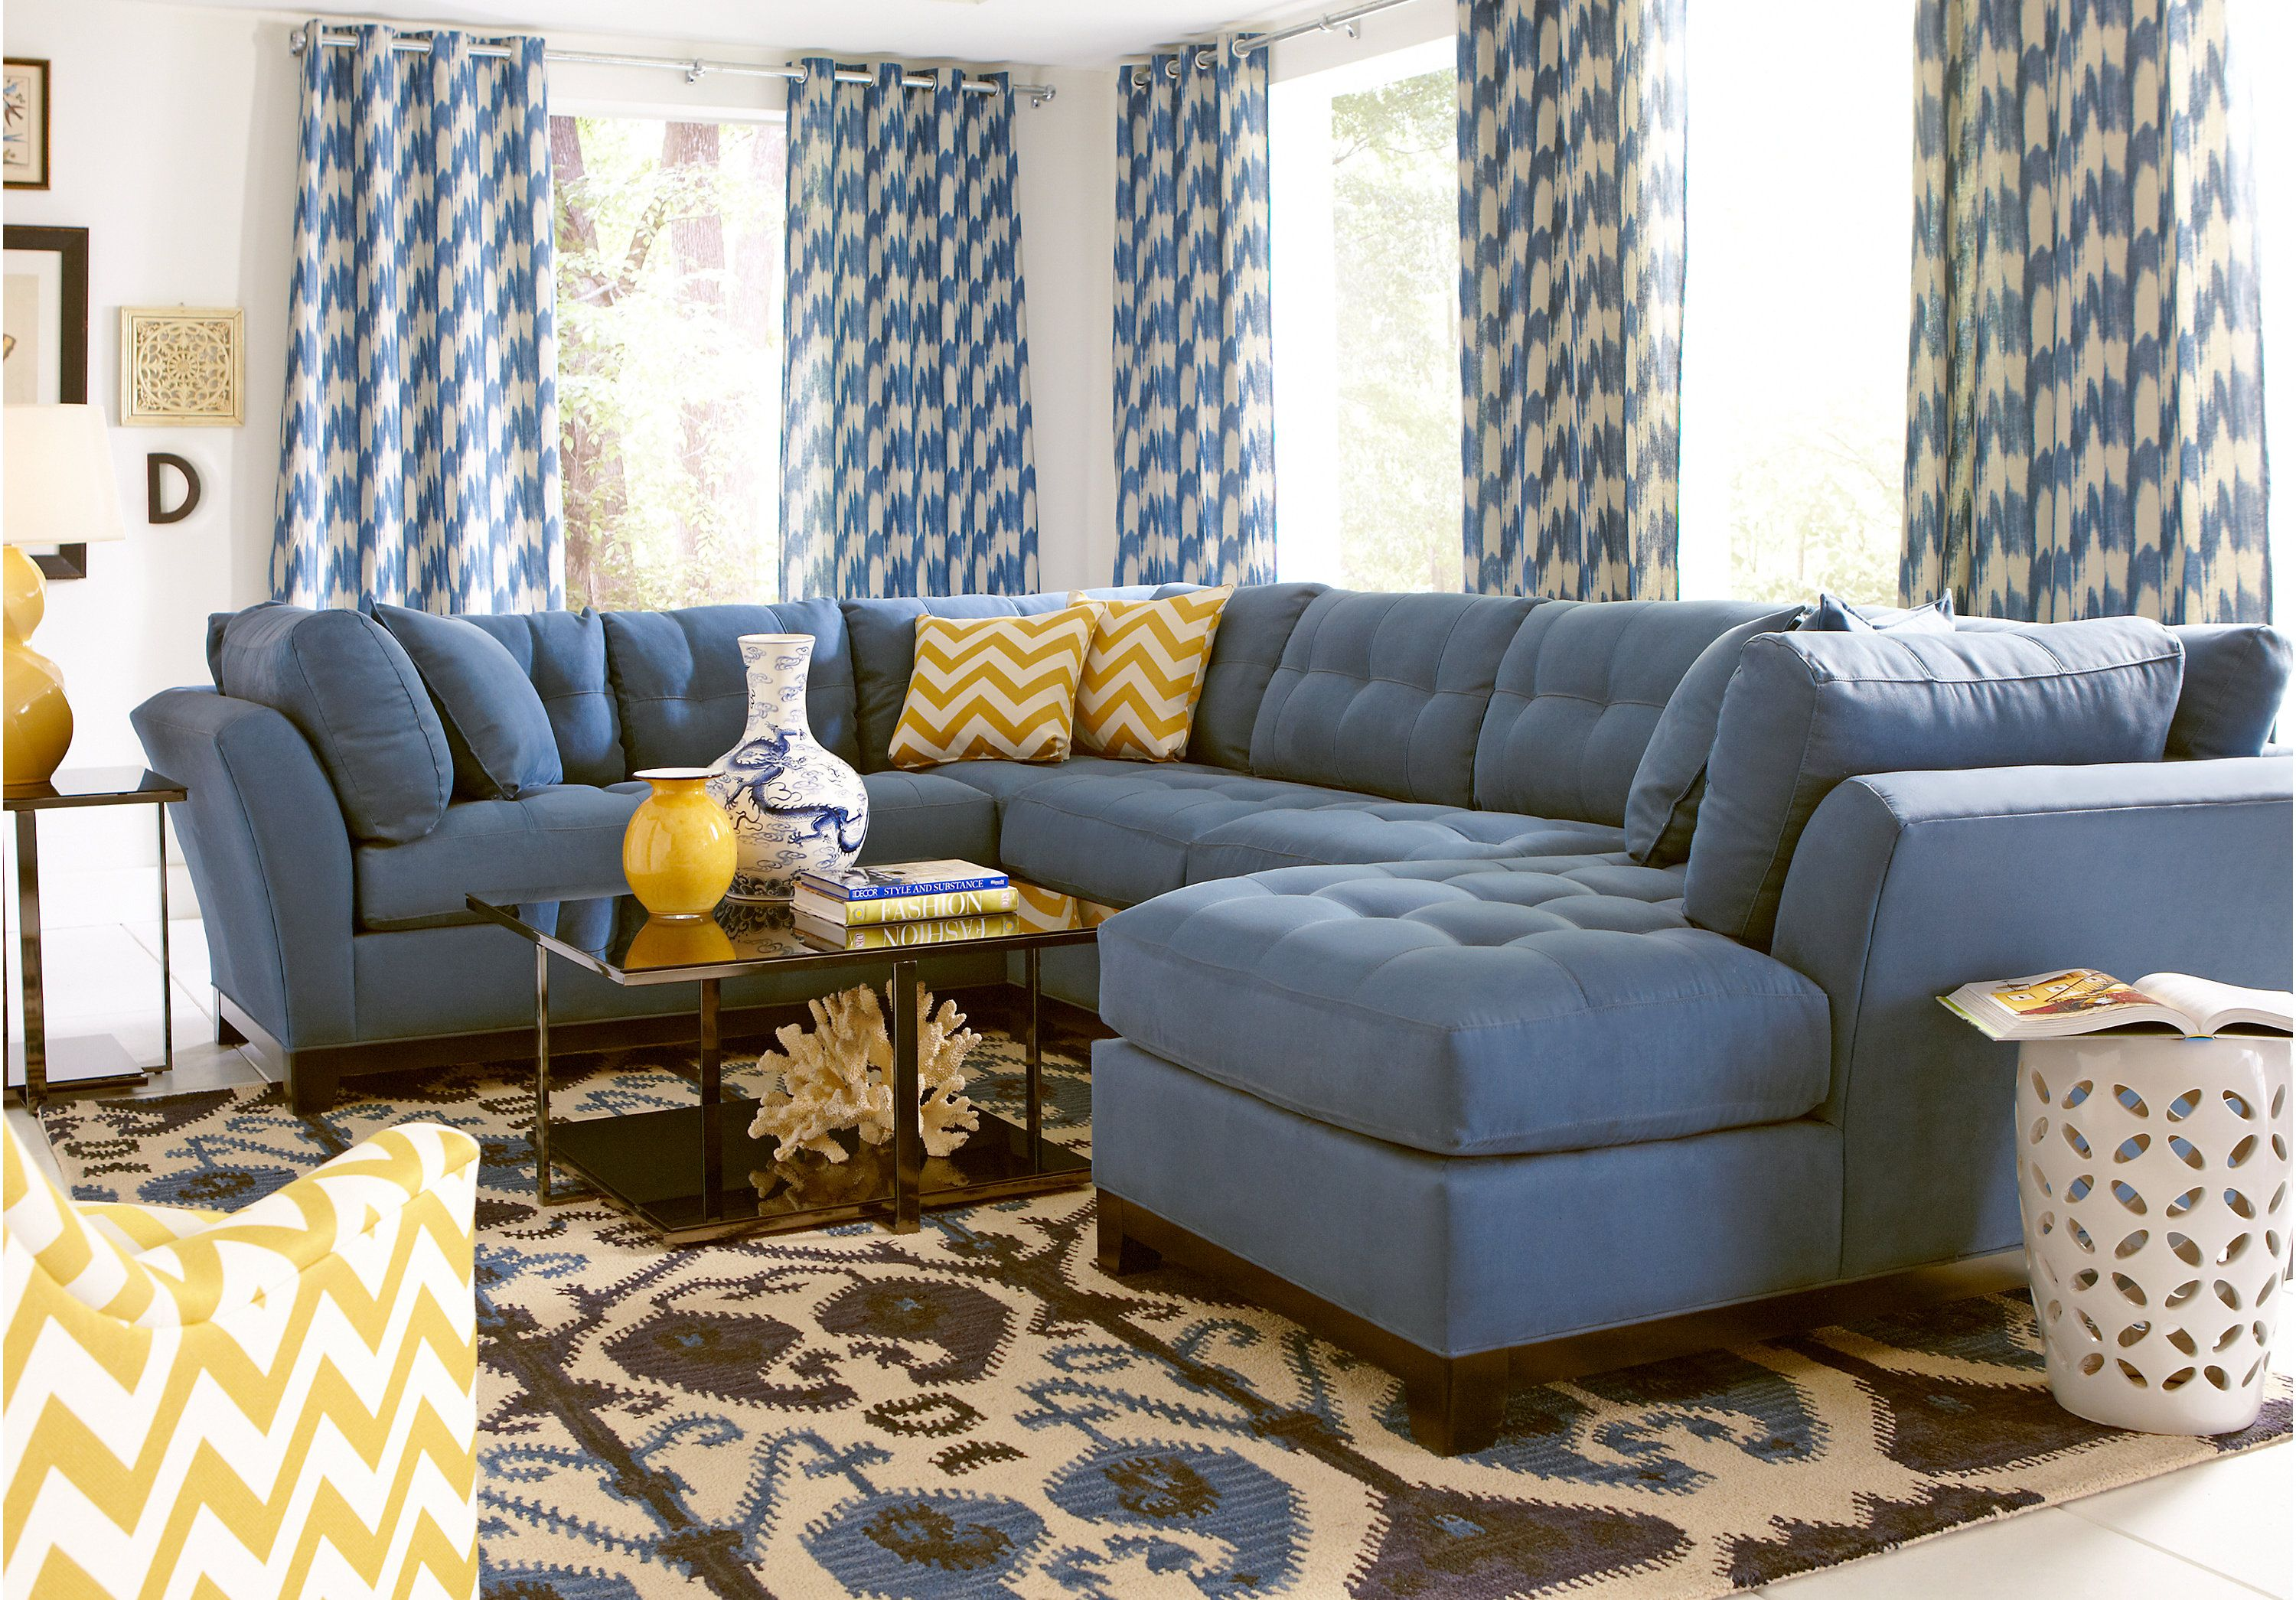 Carole Court Gray 3 Pc Sectional Living Room Rooms To Go Furniture Living Room Sectional Sectional Living Room Sets Rooms to go isofa